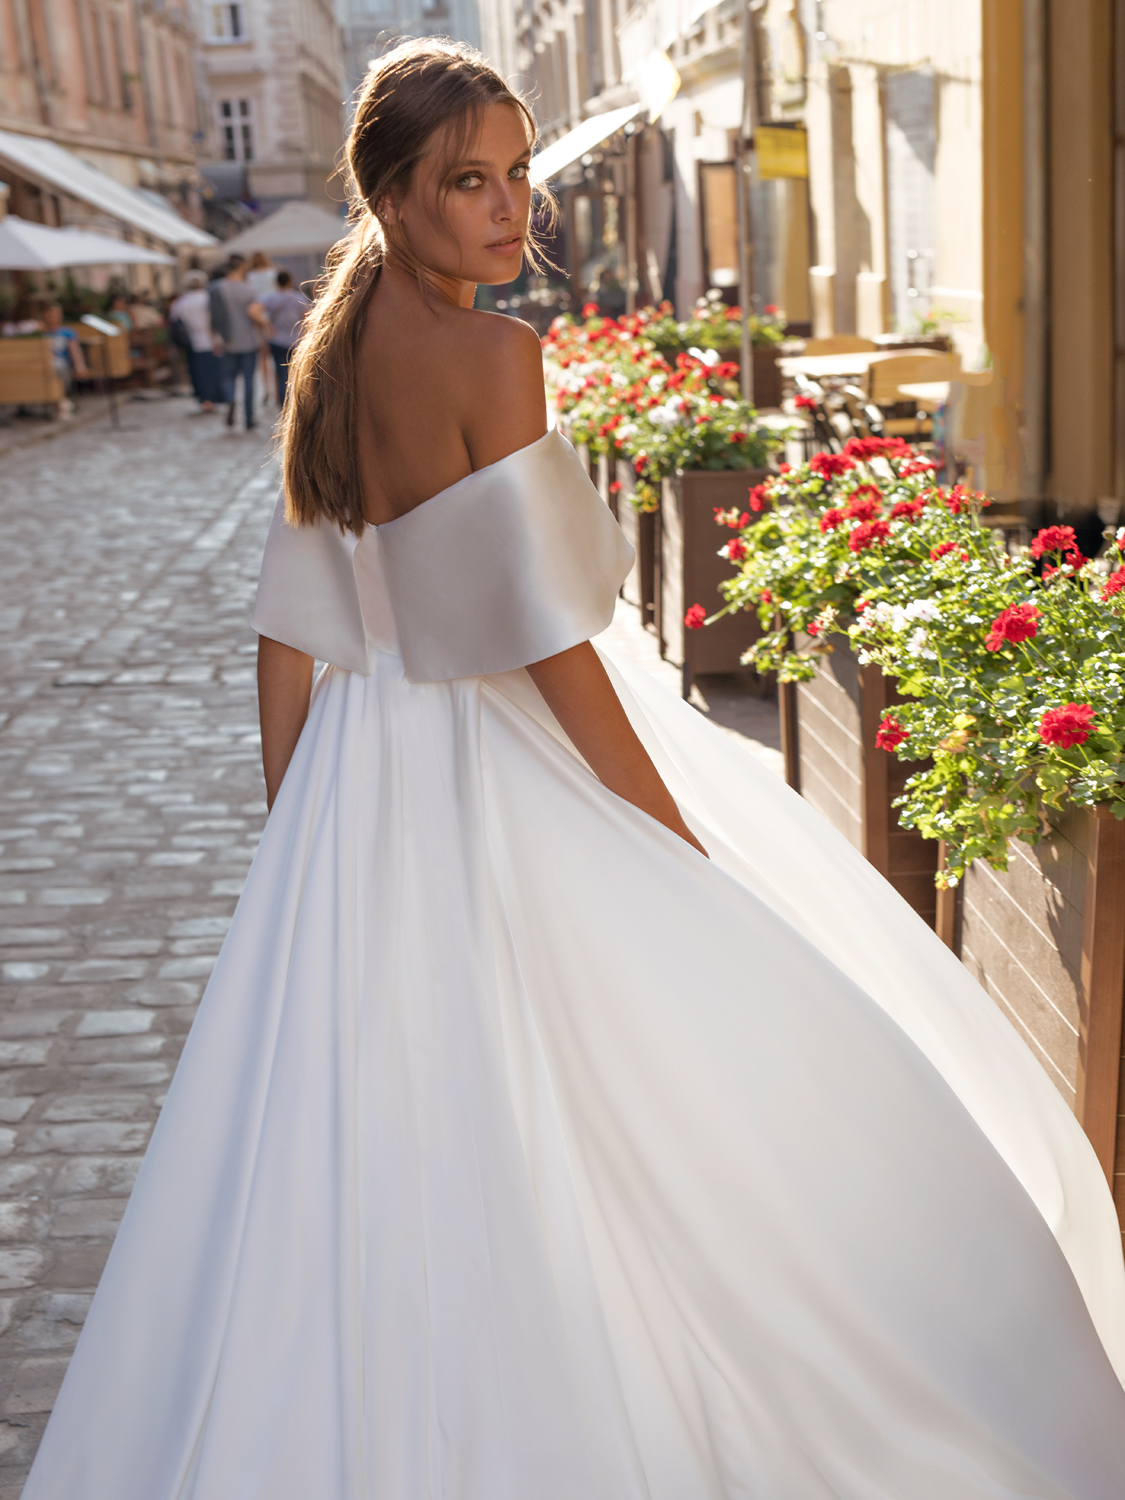 liri_designer_Wedding_Dress_nicola_back.jpg